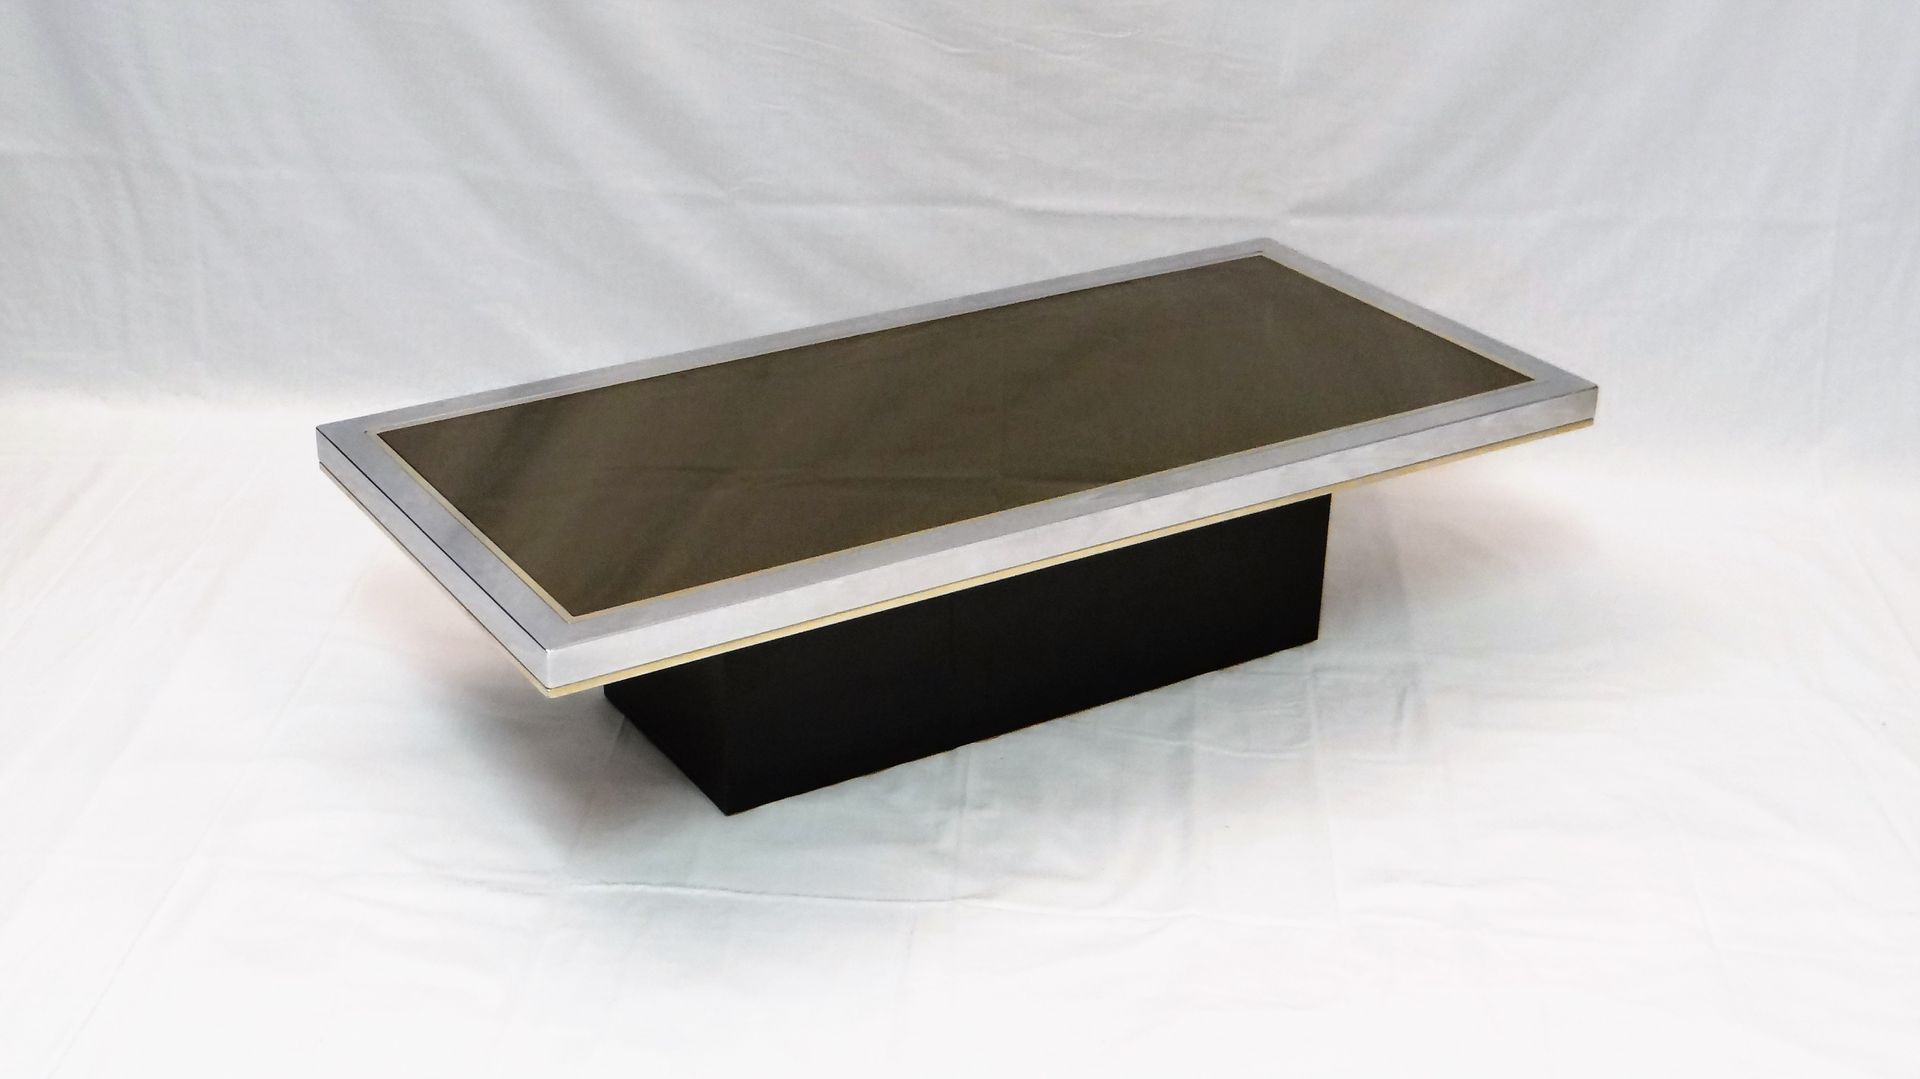 Vintage Mirrored Coffee Table by Roger Vanhevel 1970s for sale at